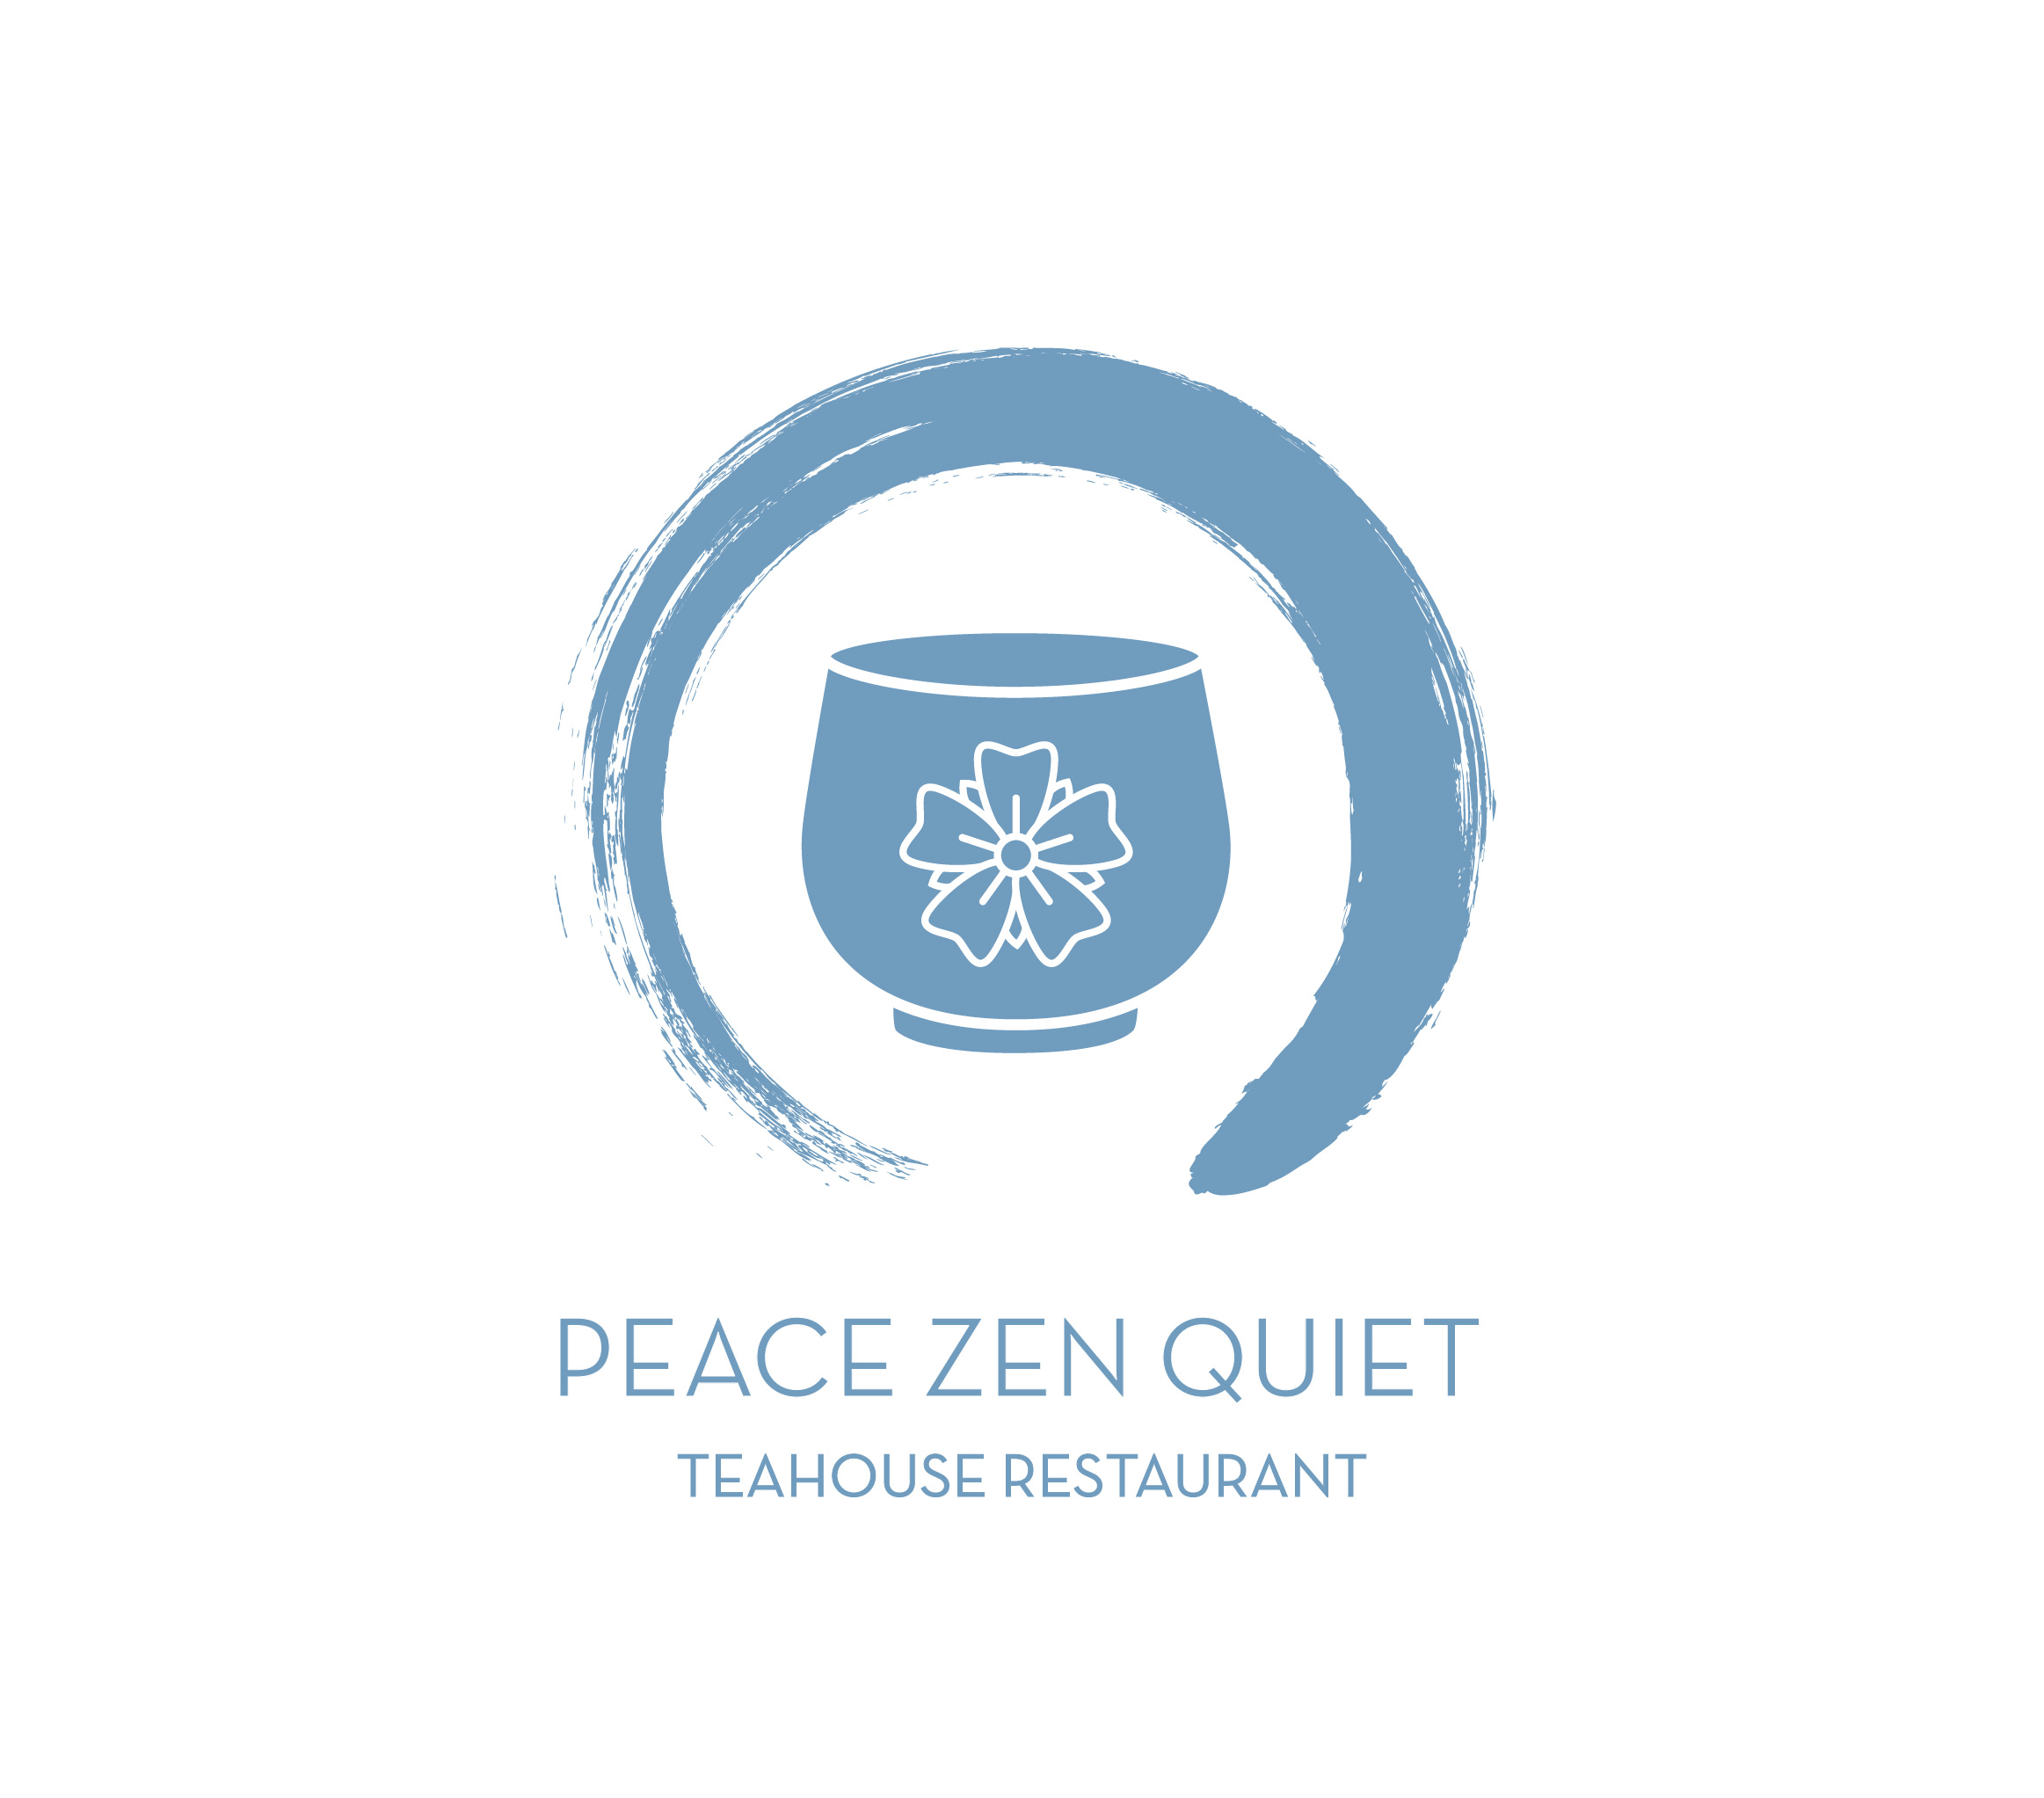 logos_Peace Zen Quiet copy_Peace Zen Quiet copy.jpg